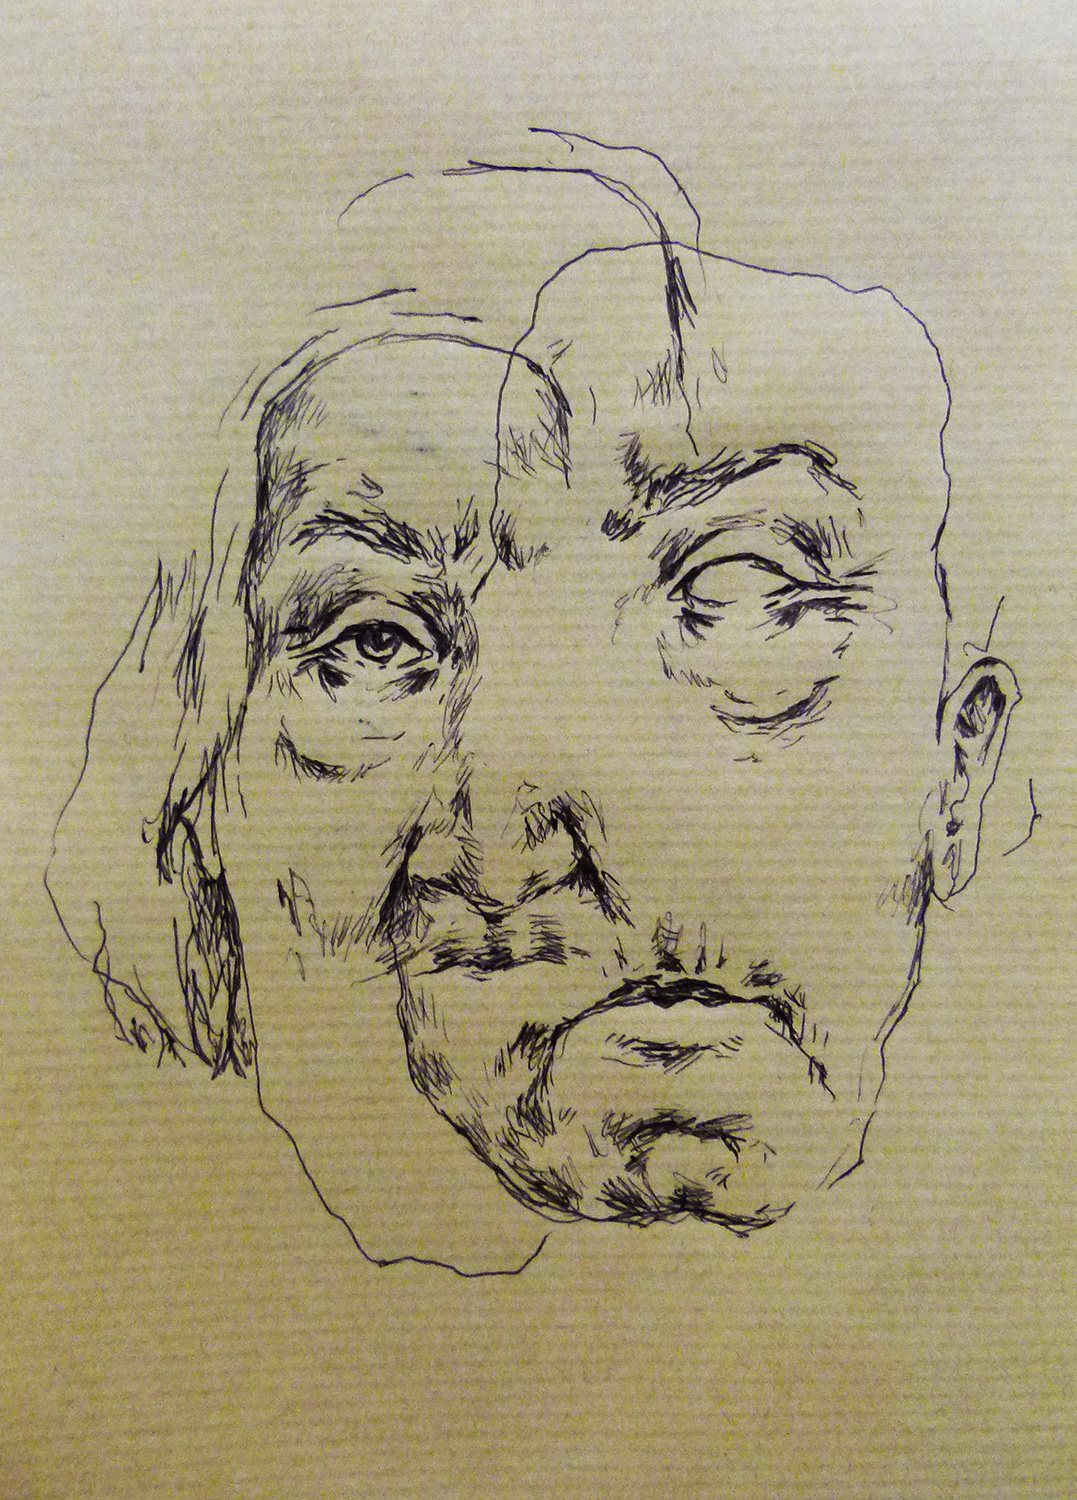 pen on paper, 20 x 15 cm, 2016